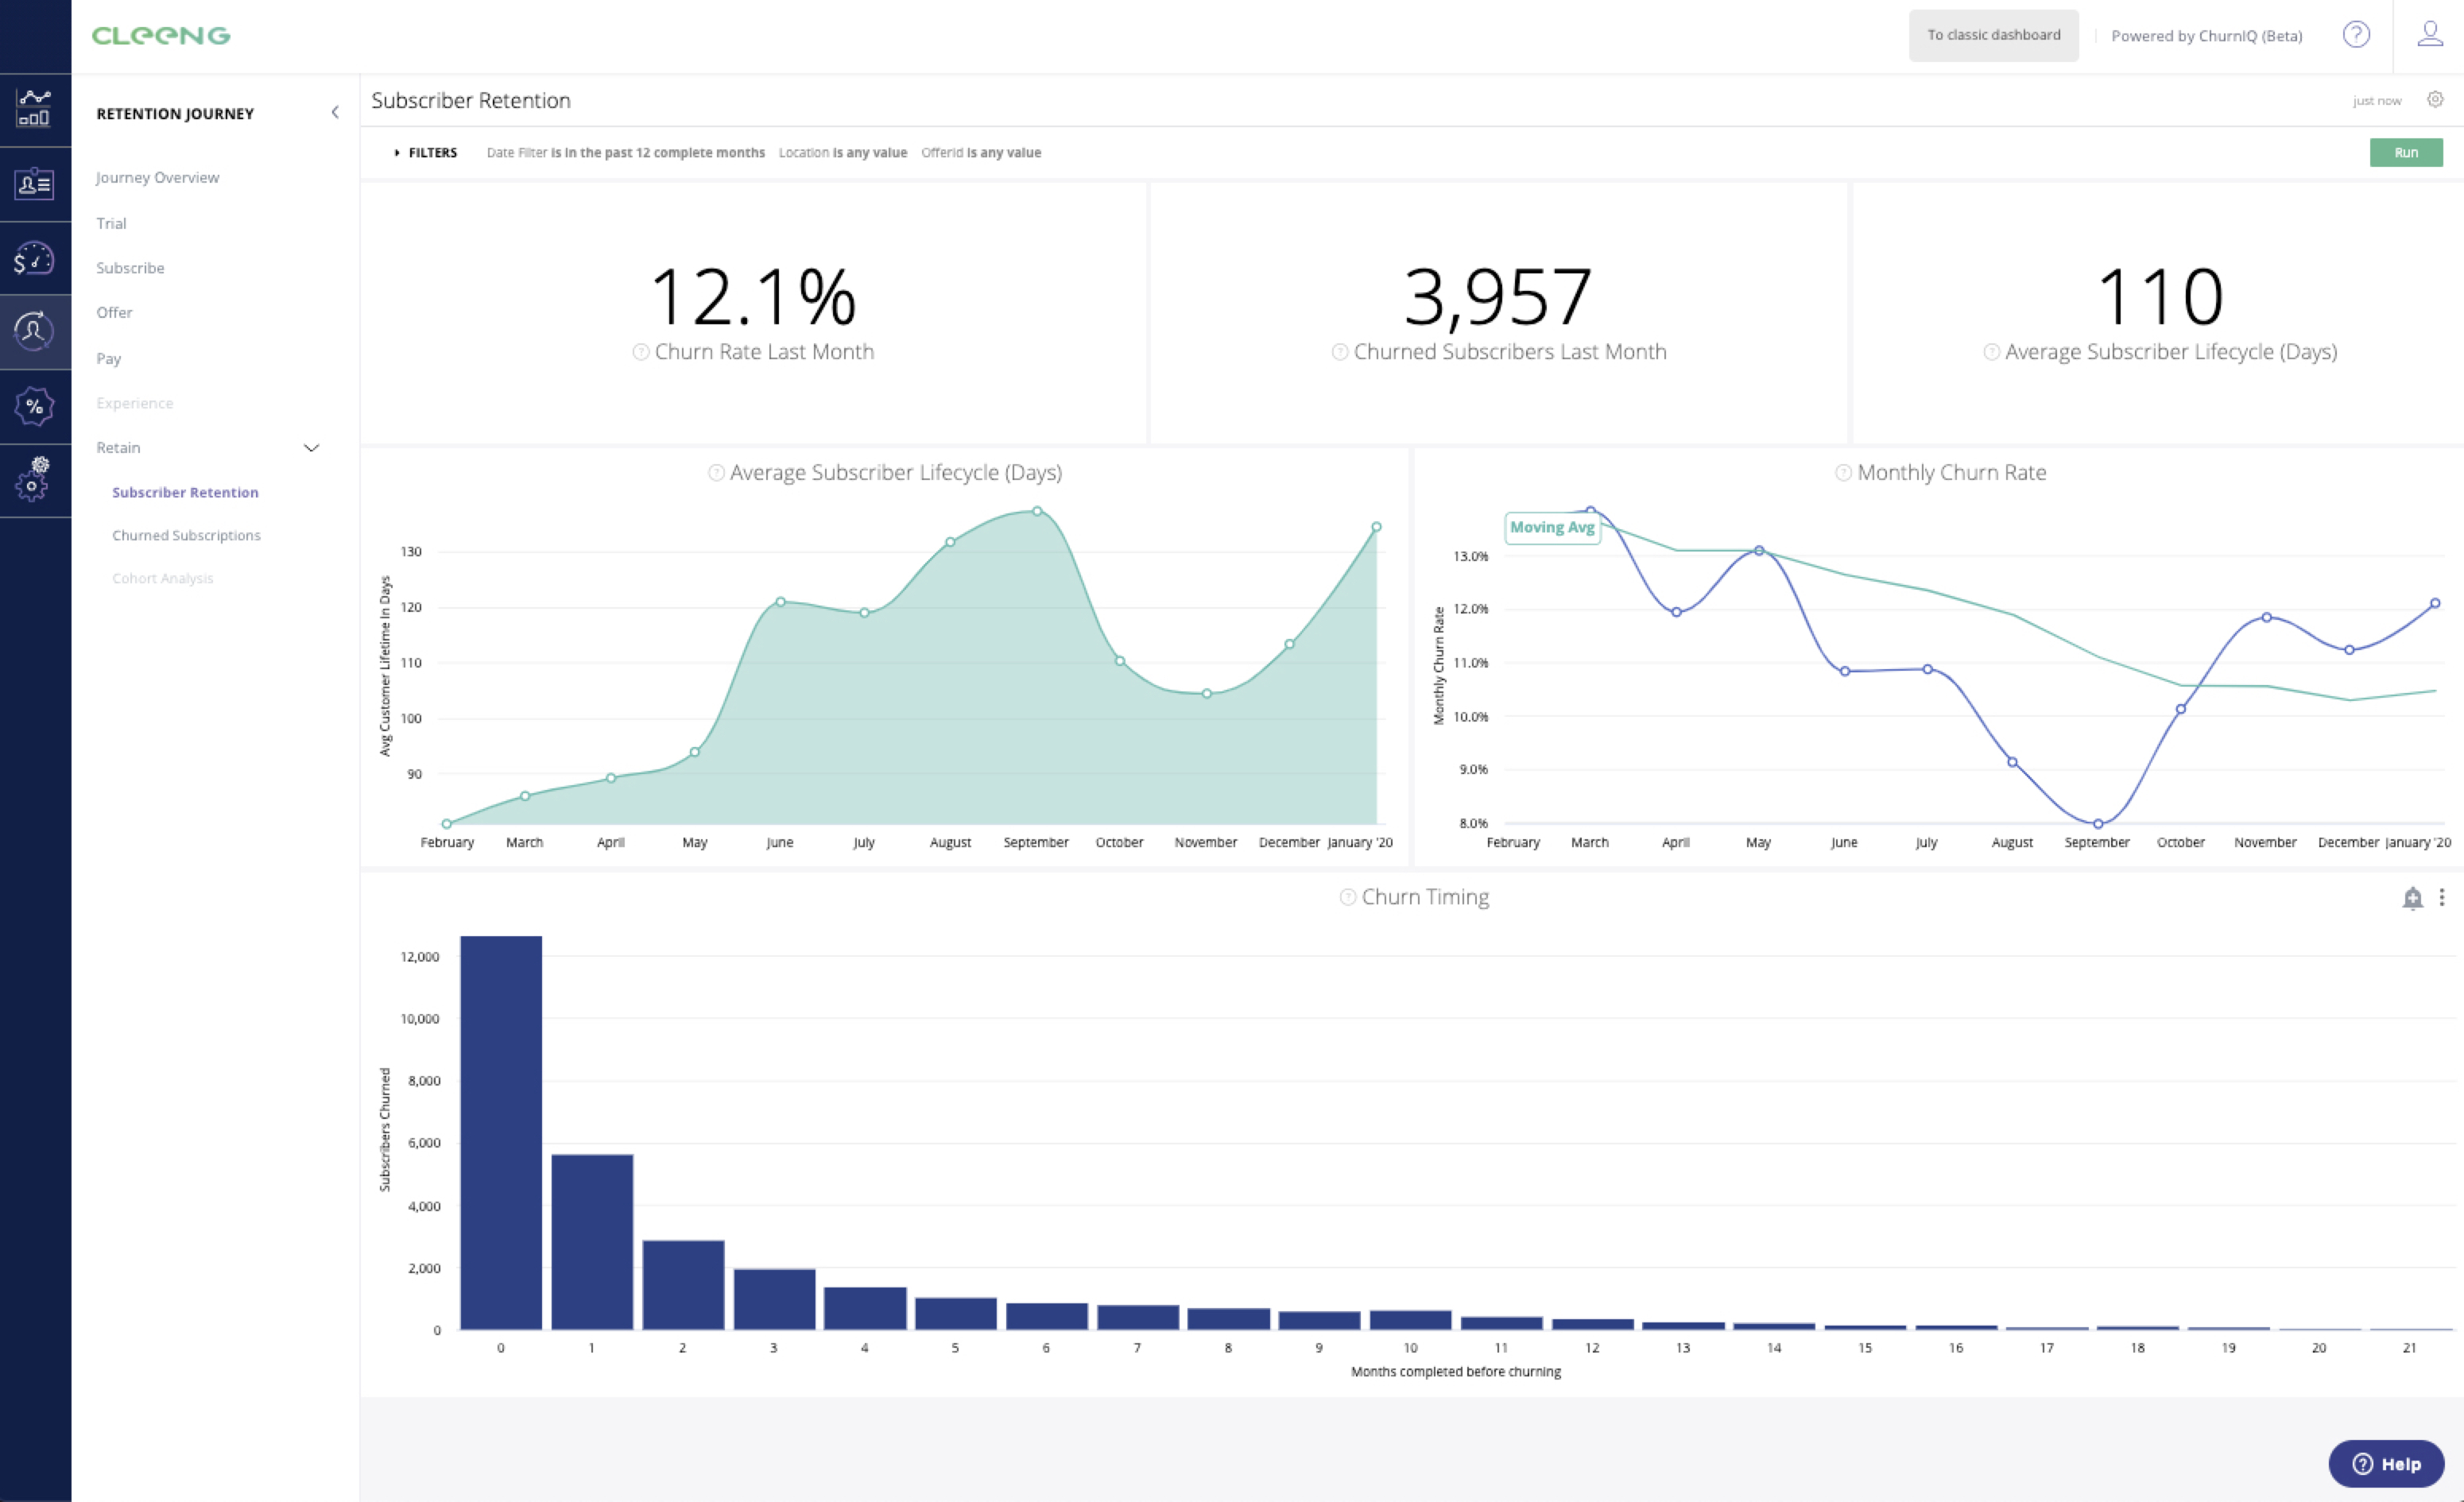 Subscriber retention dashboard - ChurnIQ 2.0